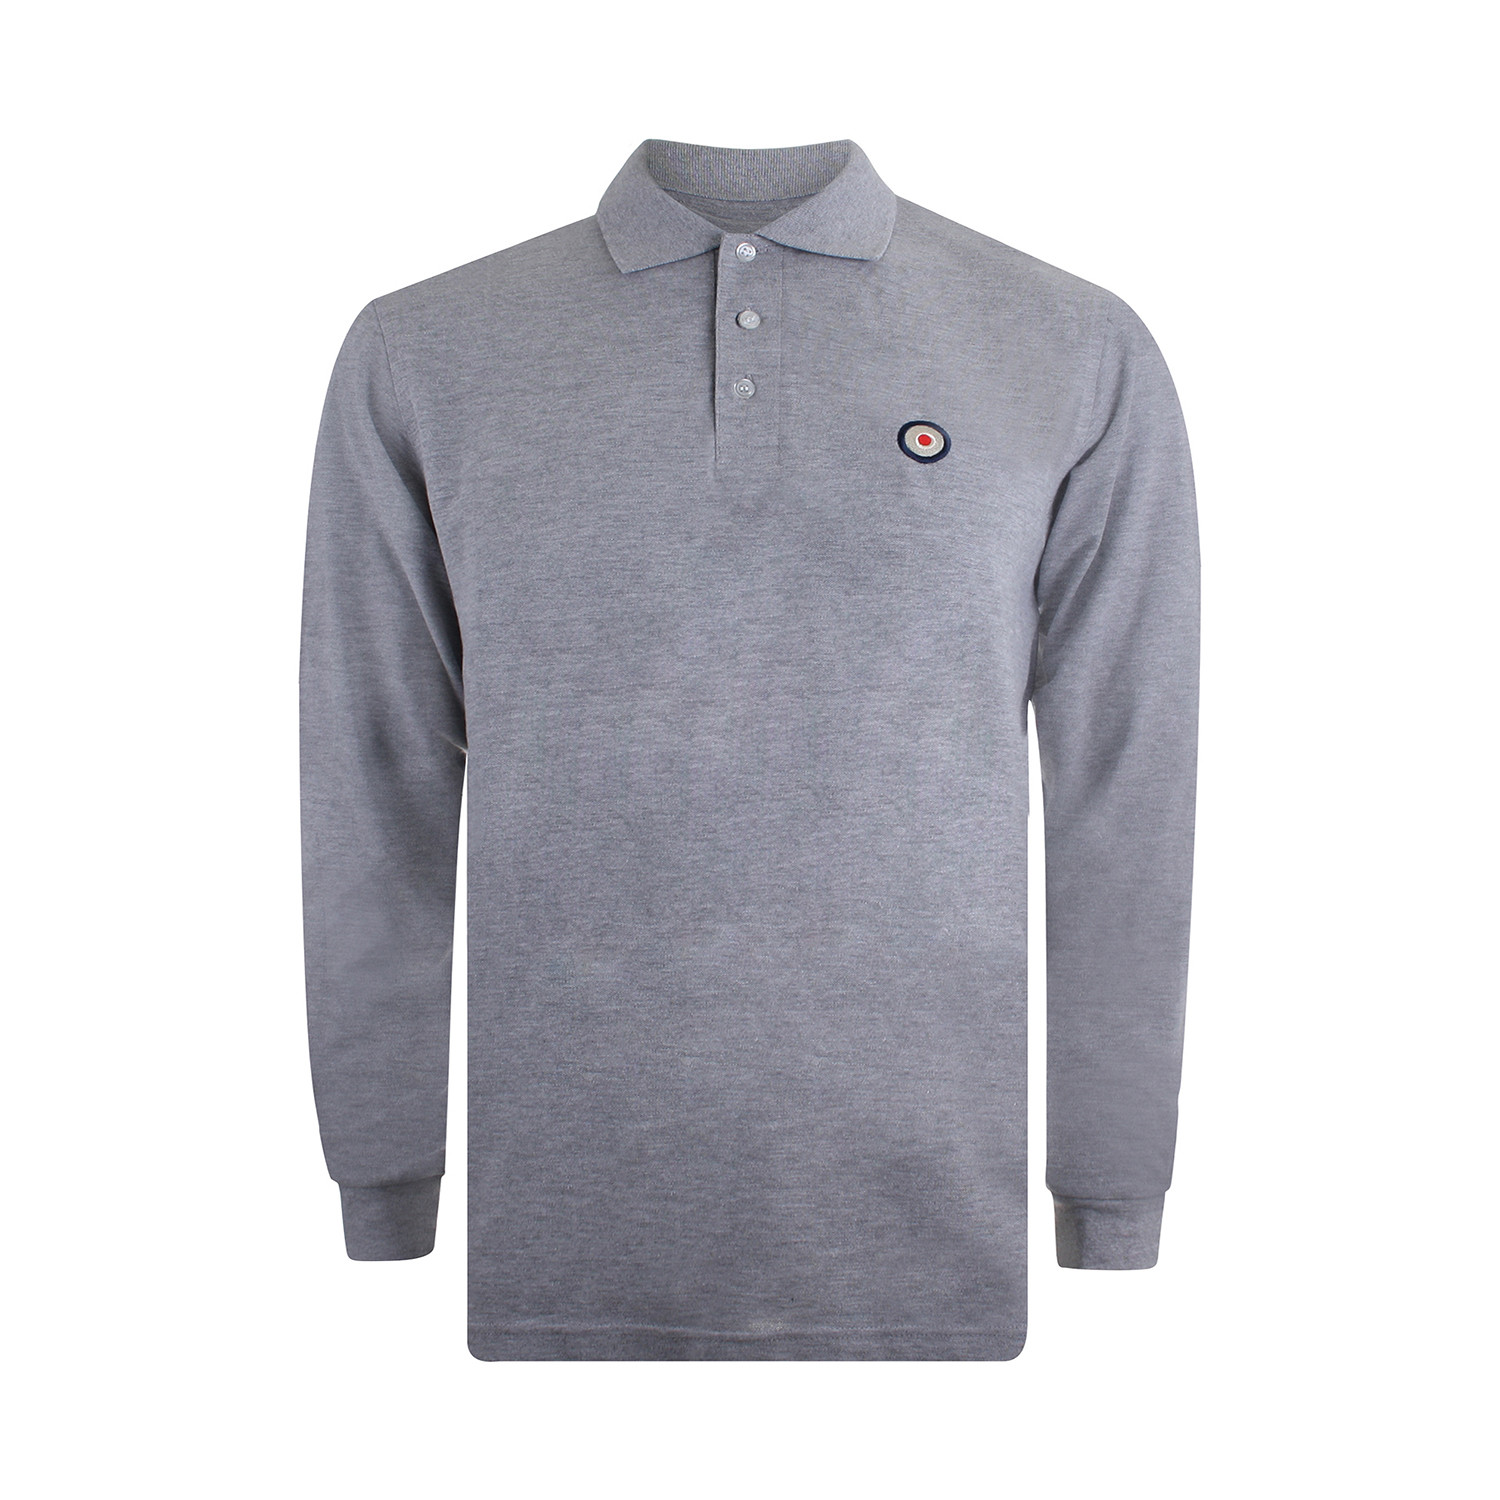 8786e9c5441 Long Sleeve Polo Shirts Target - Joe Maloy